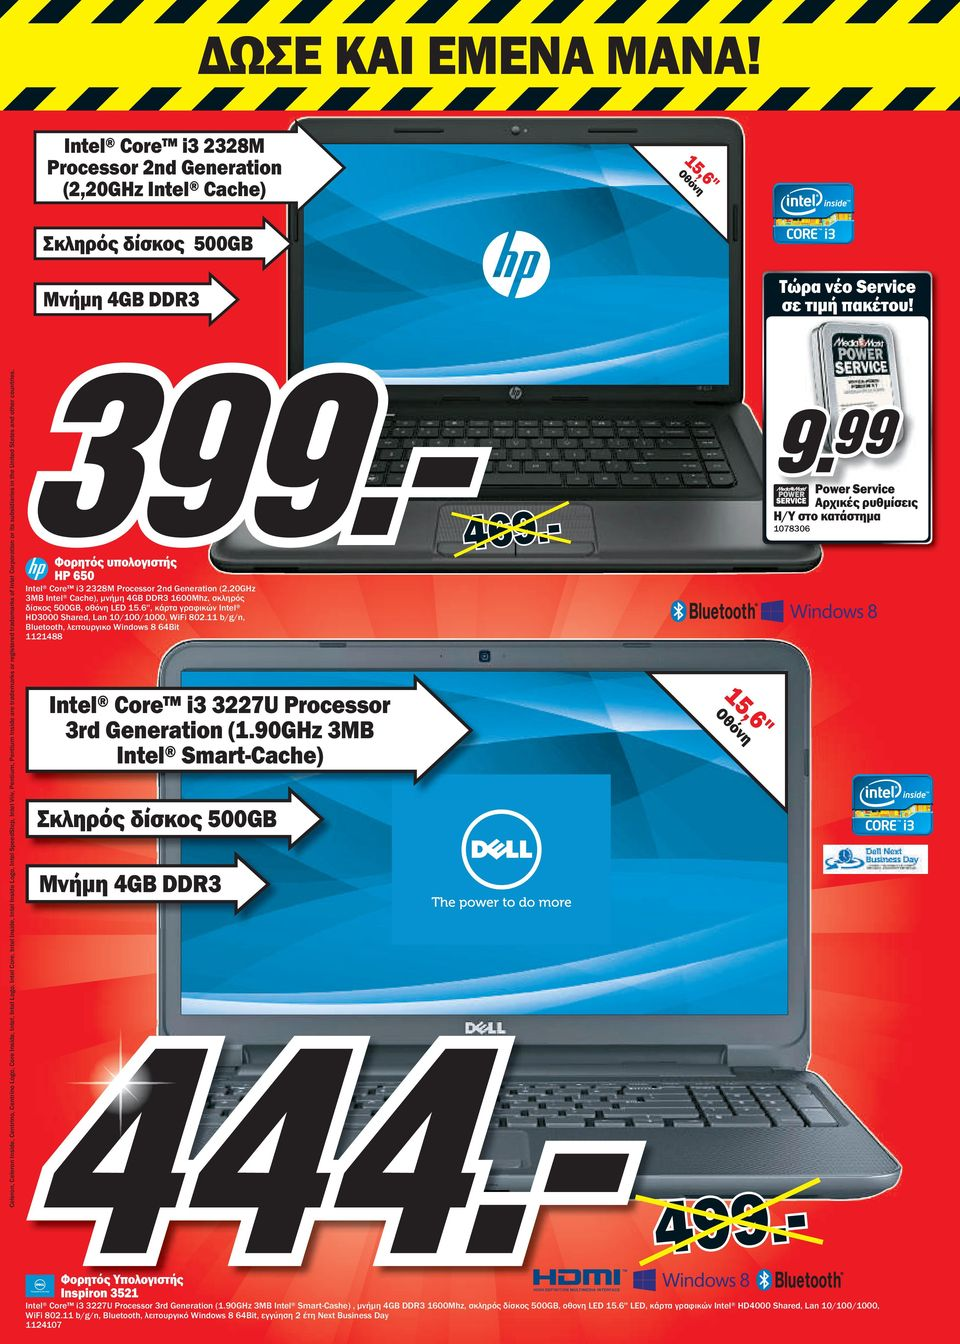 6'', κάρτα γραφικών Intel HD3000 Shared, Lan 10/100/1000, WiFi 802.11 b/g/n, Bluetooth, λειτουργικο Windows 8 64Bit 1121488 Intel Core i3 3227U Processor 3rd Generation (1.